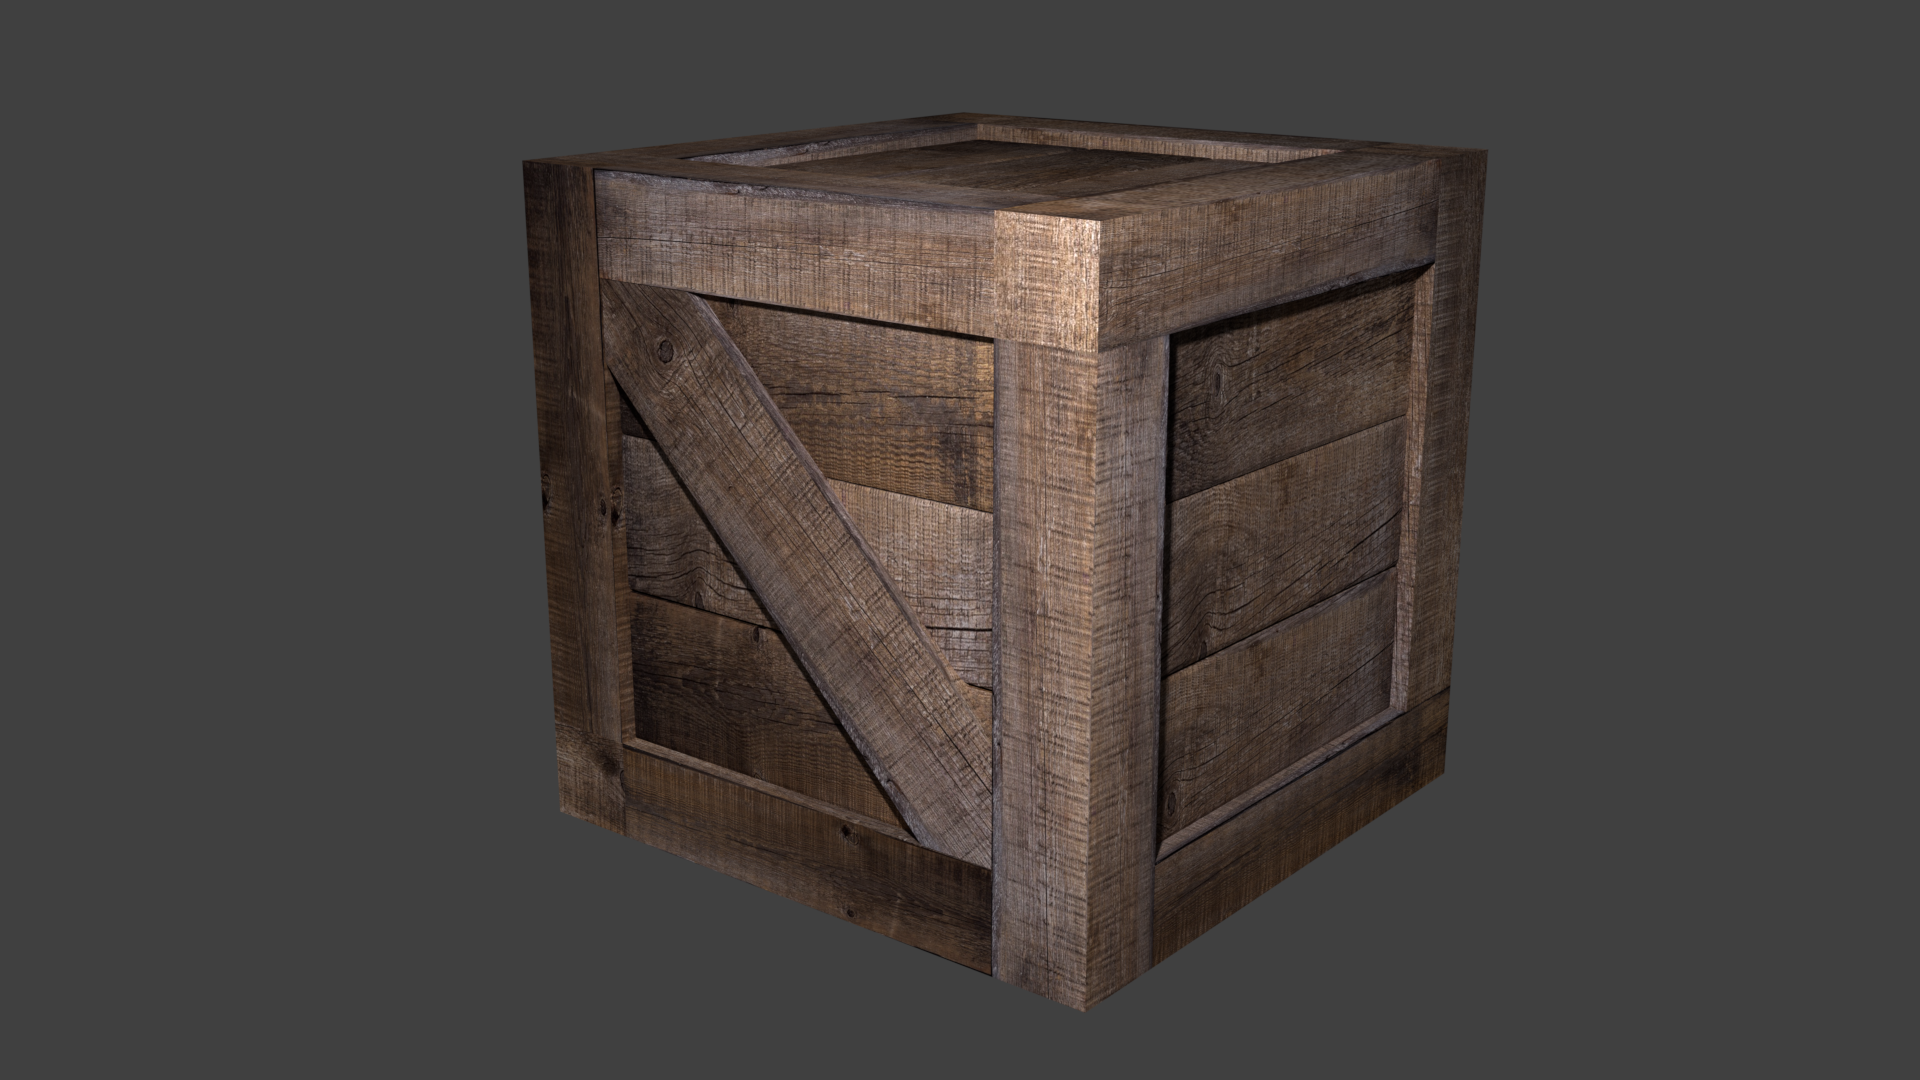 Wooden Crate By Josepharaoh99